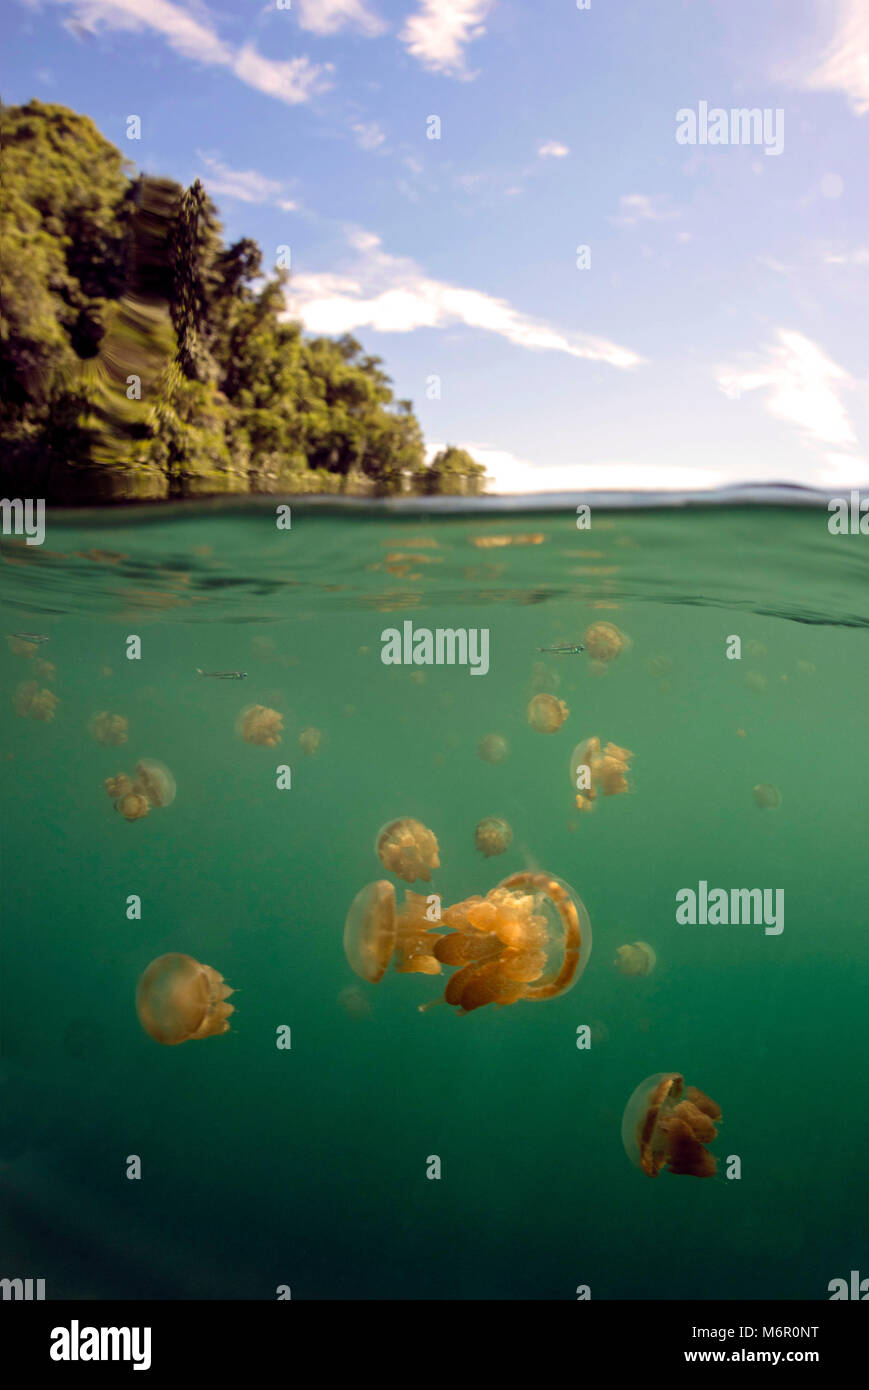 Jellyfish lake. Picture was taken in the Celebes sea, Indonesia Stock Photo